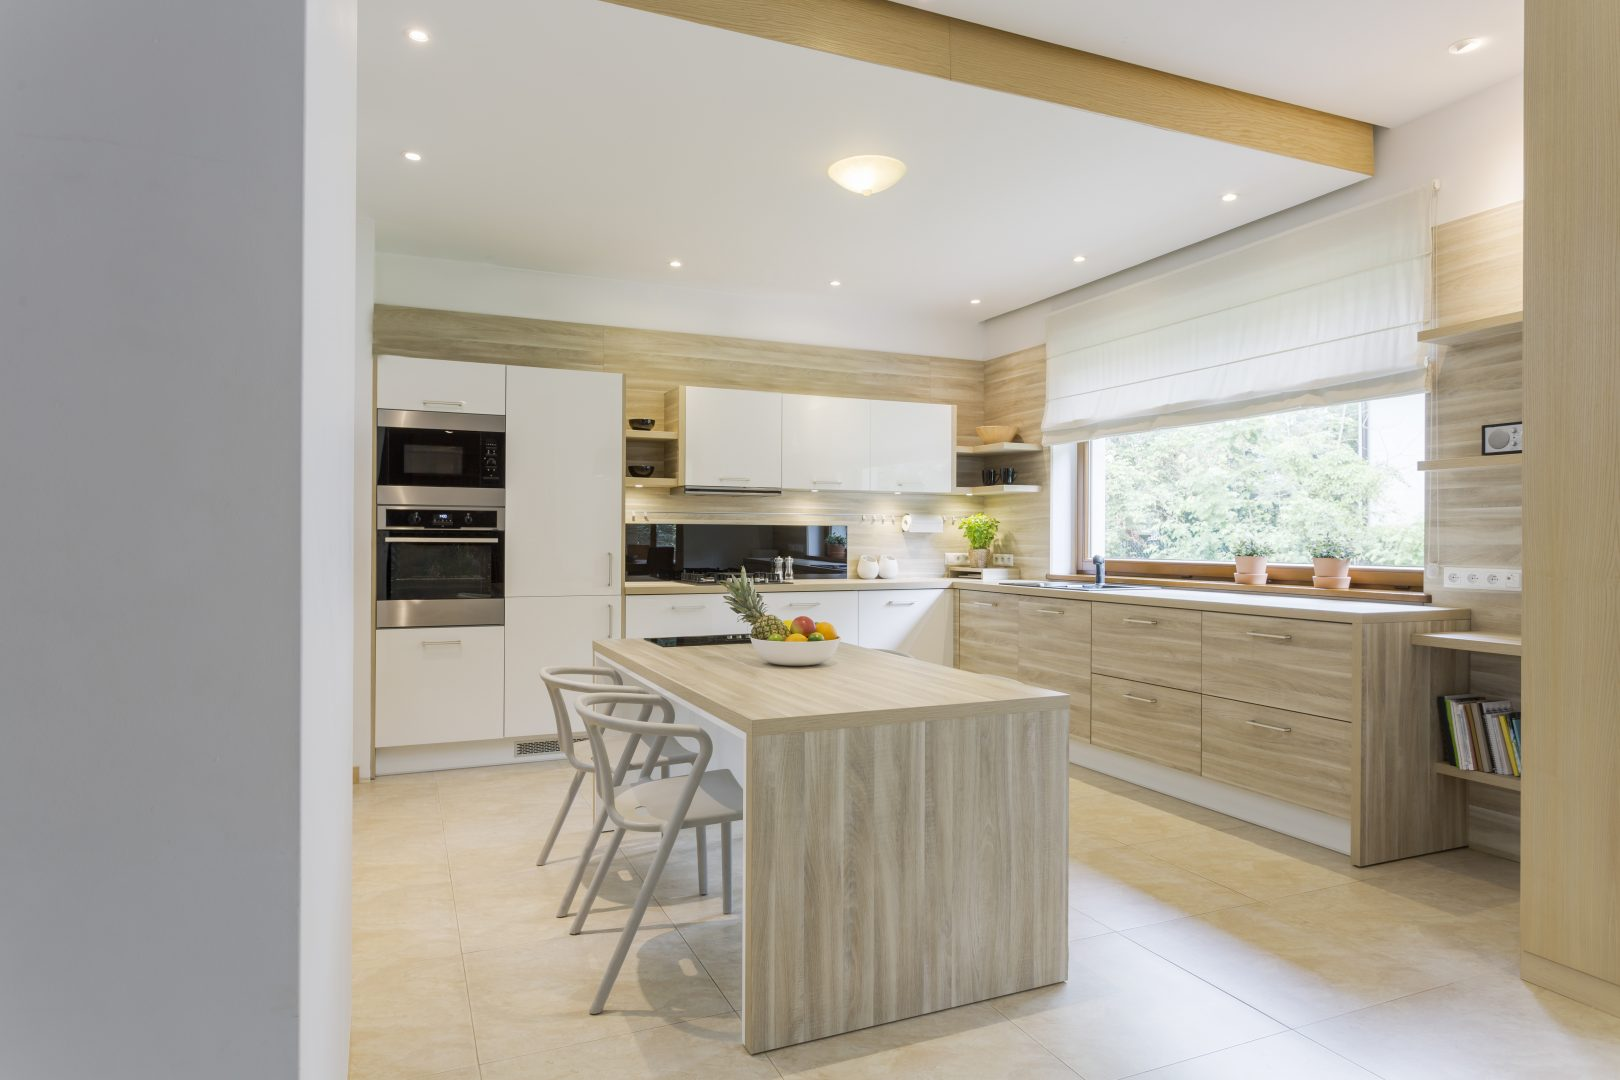 Kitchen in light colours